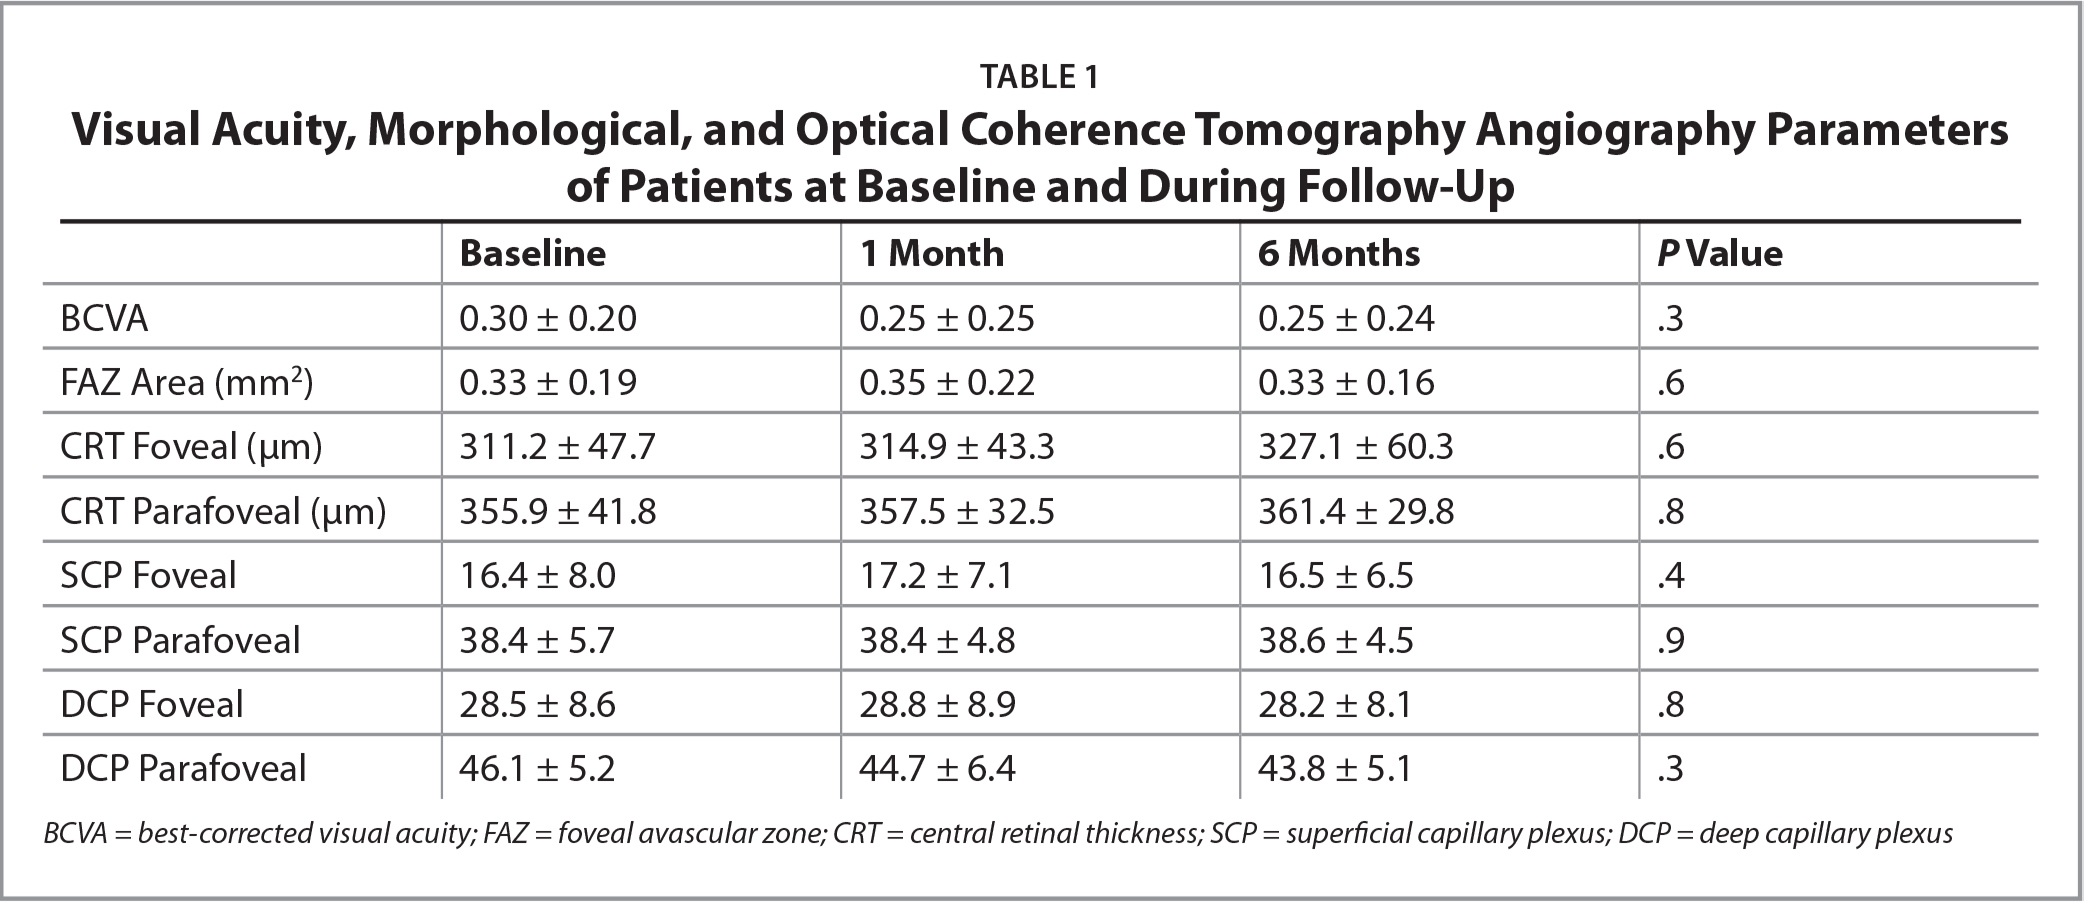 Visual Acuity, Morphological, and Optical Coherence Tomography Angiography Parameters of Patients at Baseline and During Follow-Up